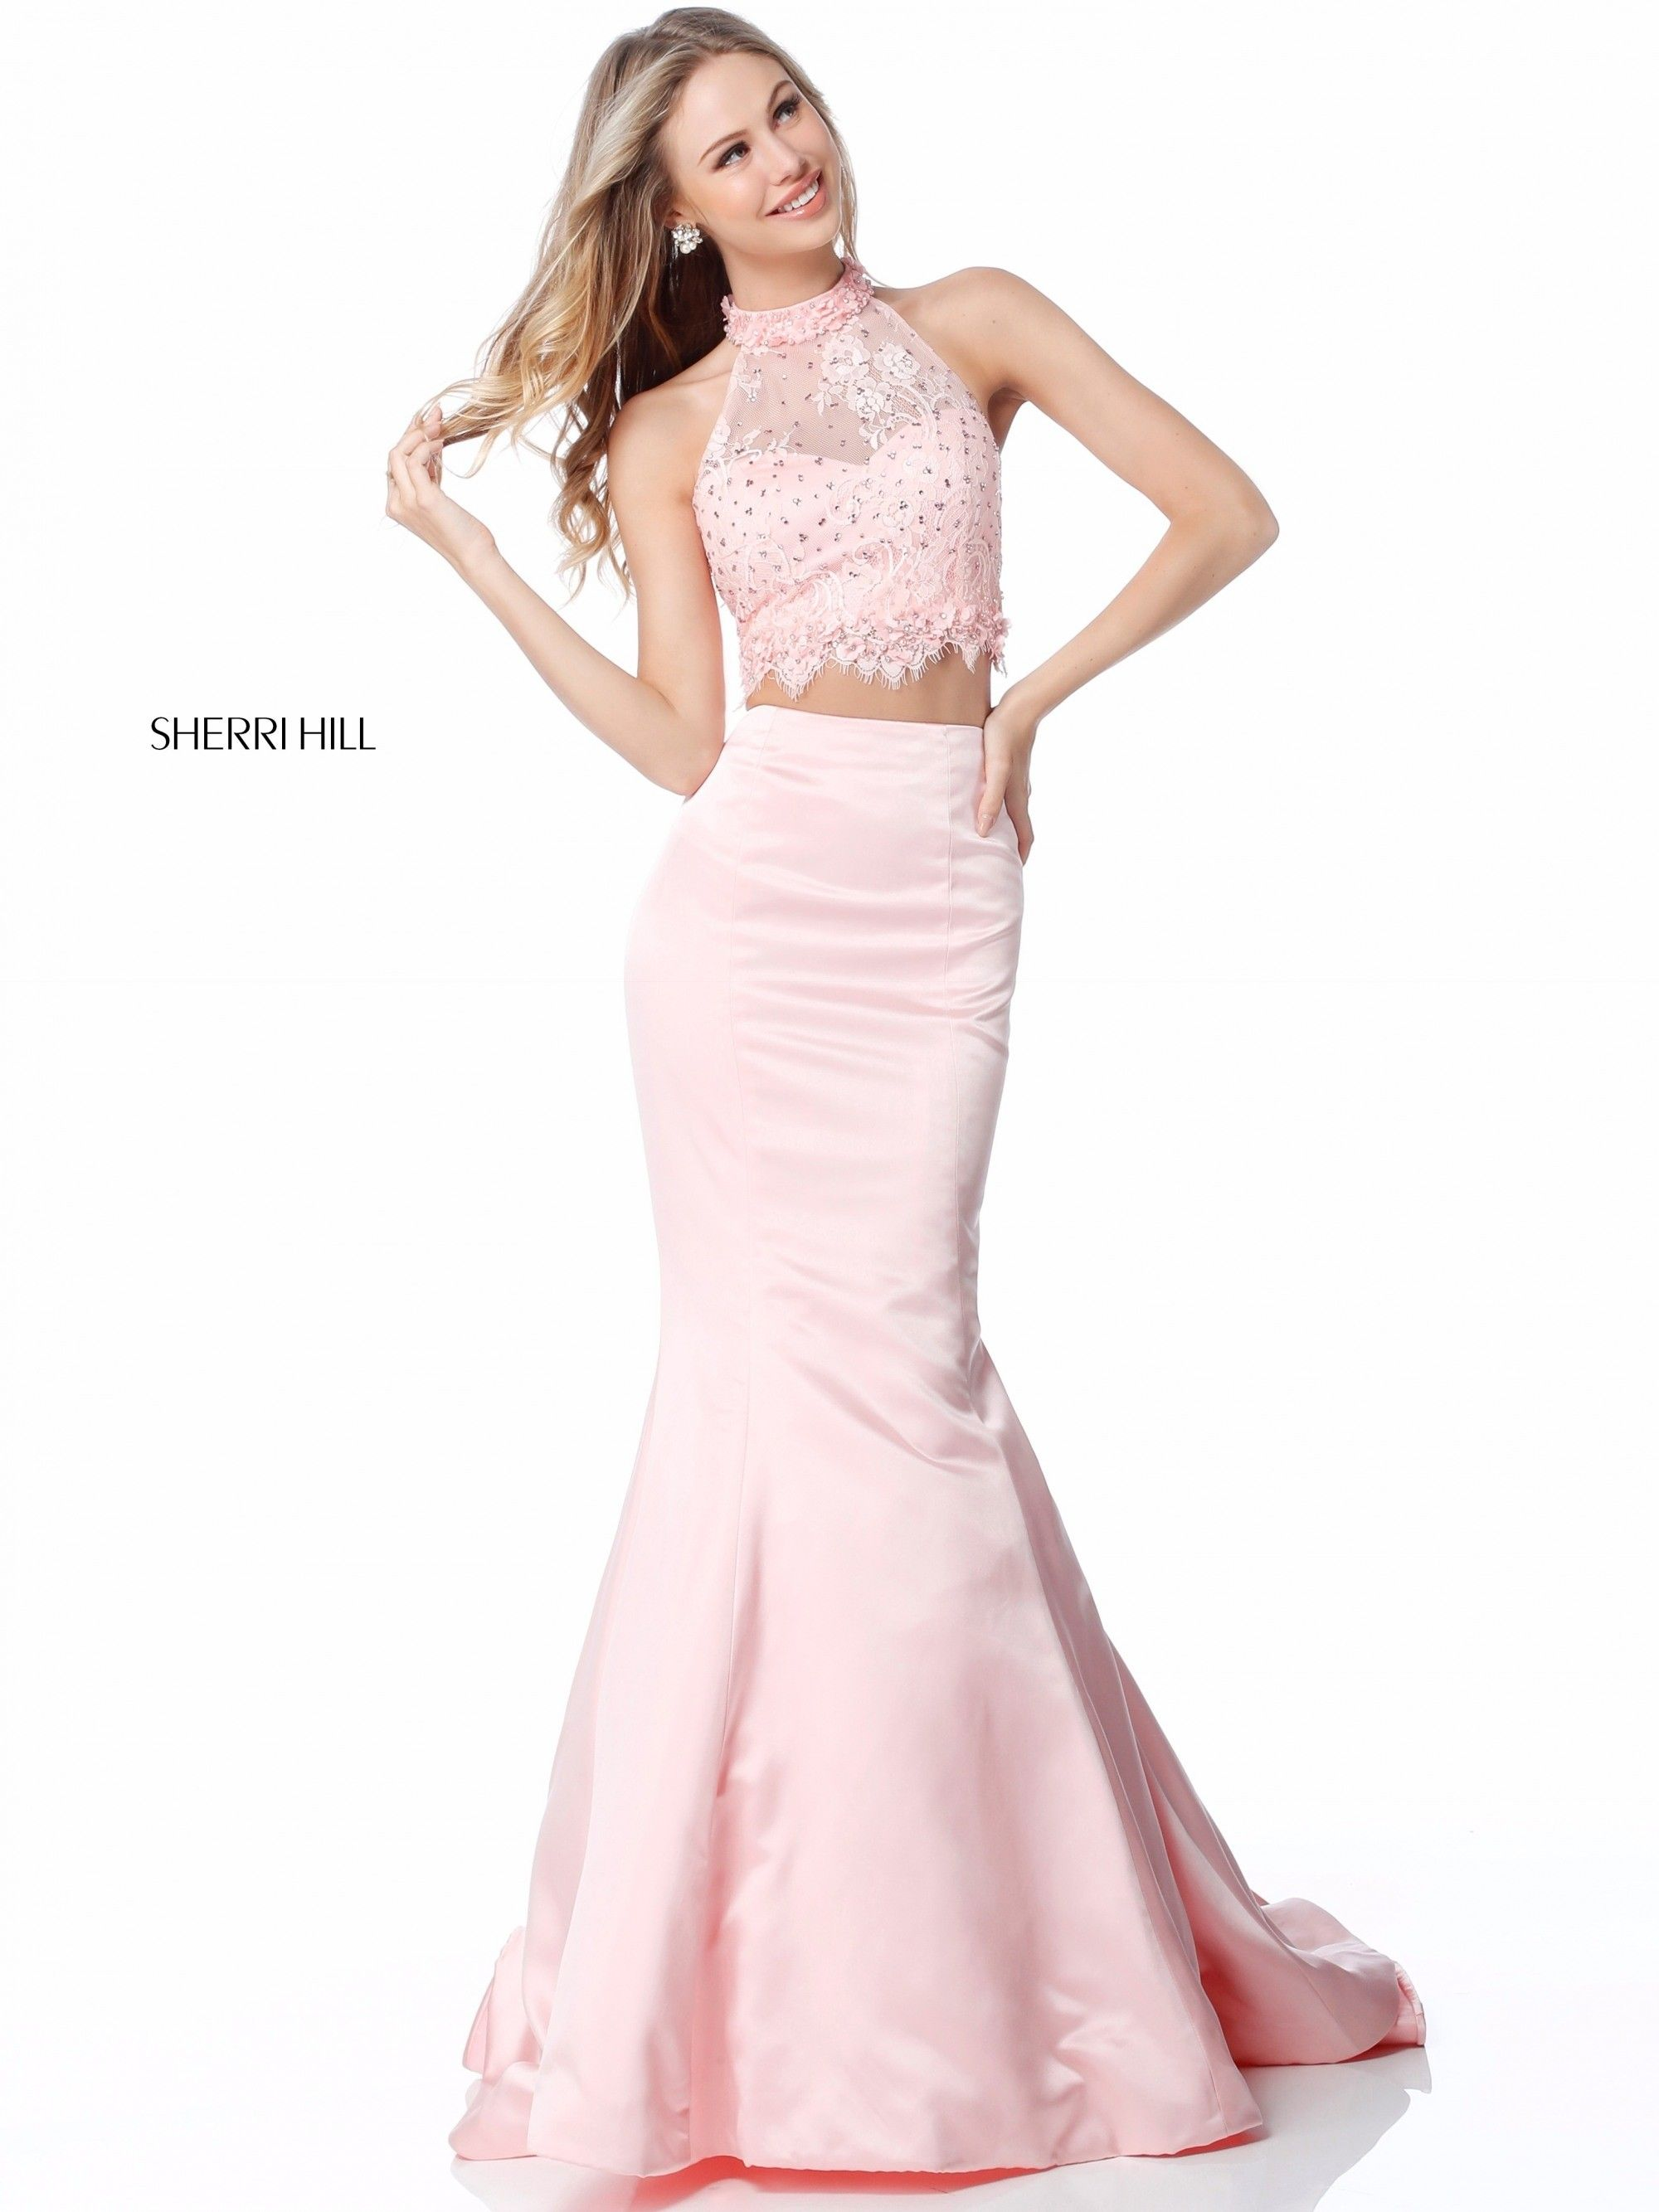 Sherri Hill 51860 Is A Sophisticated Two Piece Mermaid Gown With A Lace Halter Top And Tank Stra Neon Prom Dresses Sherri Hill Prom Dresses Prom Dresses Long [ 2667 x 2000 Pixel ]